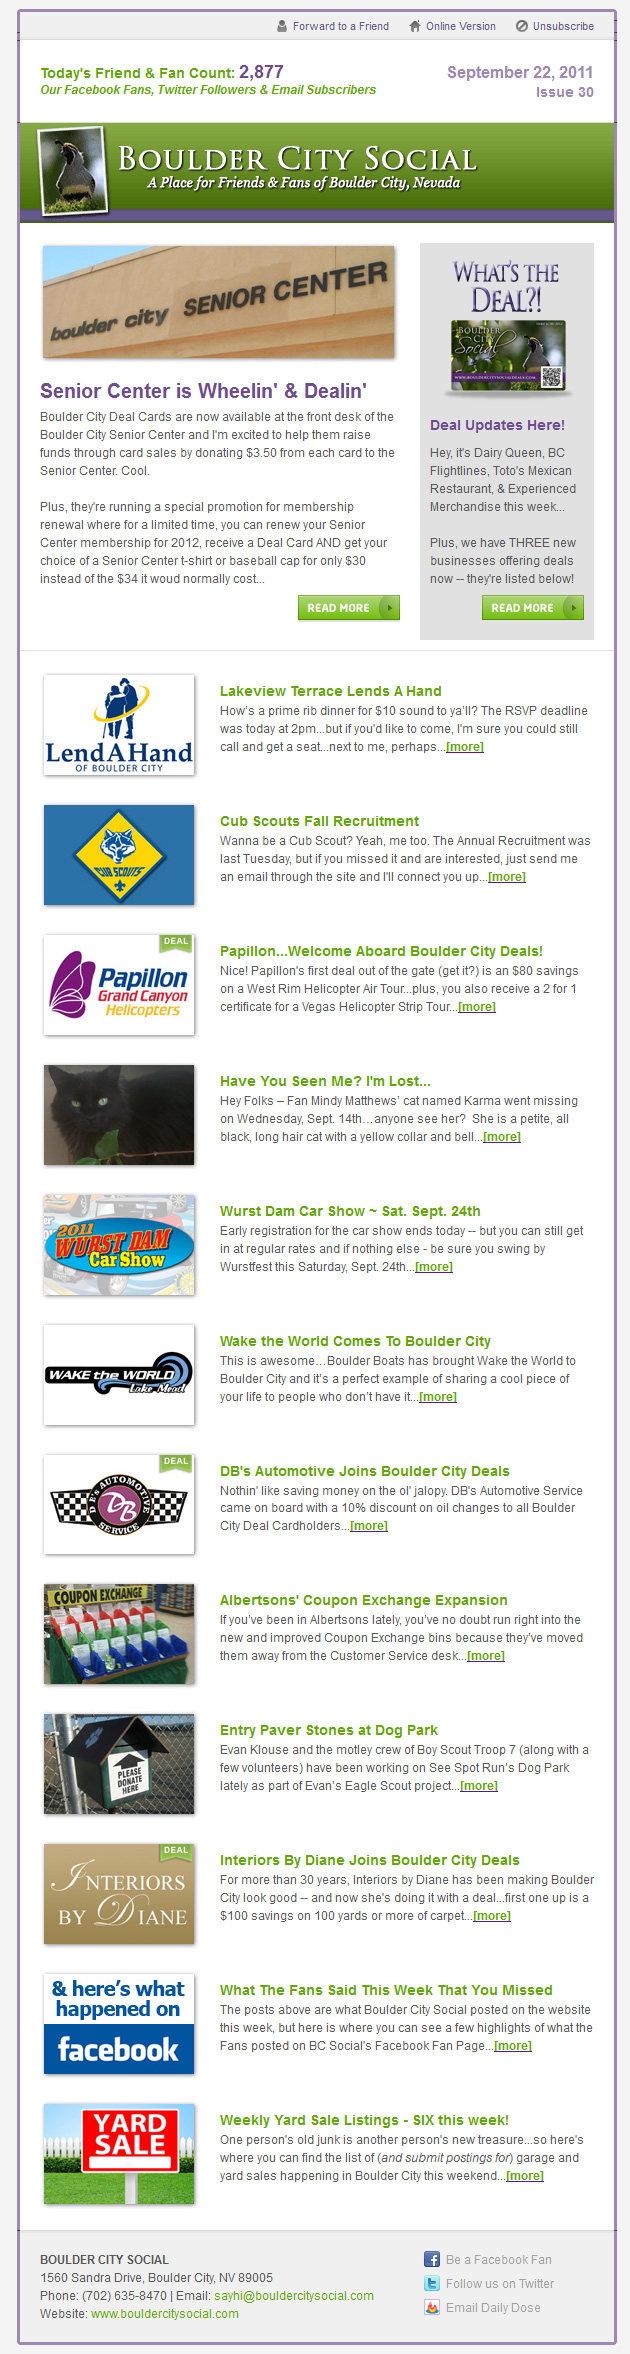 Boulder City Social Weekly eNews from 9/22/11